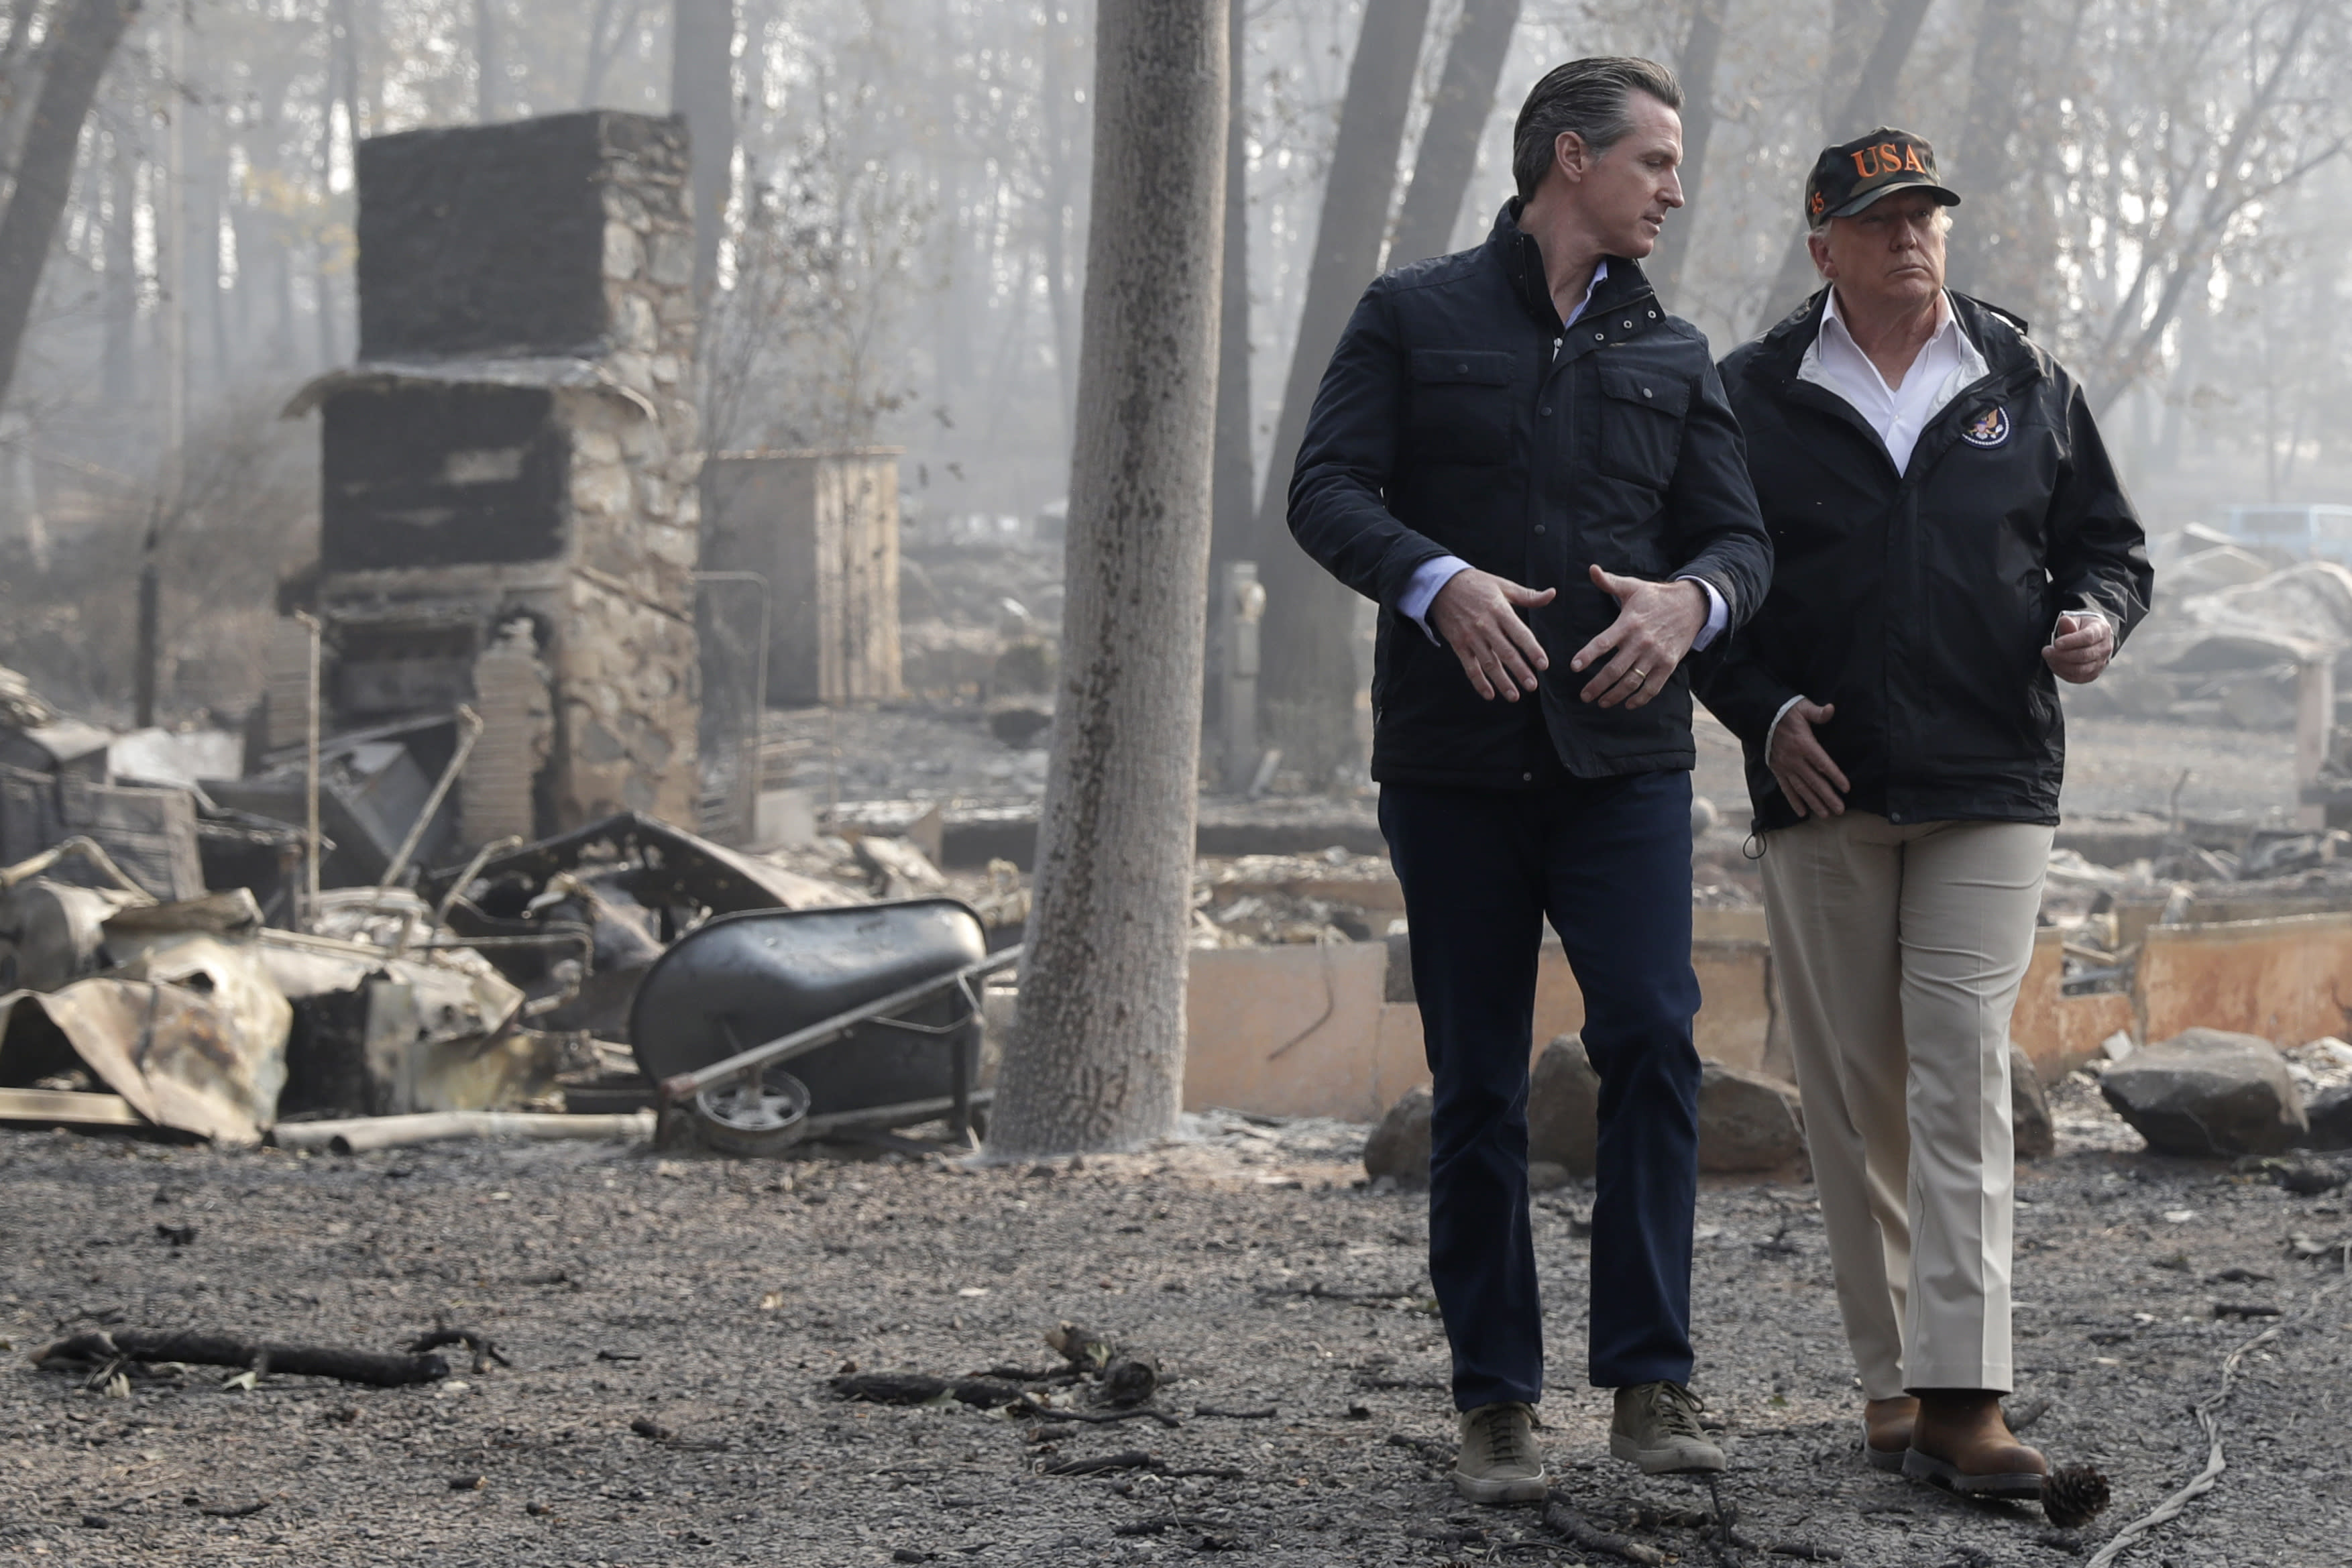 FILE - In this Nov. 17, 2018, file photo, President Donald Trump talks with California Gov.-elect Gavin Newsom during a visit to a neighborhood destroyed by the wildfires in Paradise, Calif. California has long used its status as the nation's most populous state (nearly 40 million people) and the world's fifth-largest economy (about $3 trillion) to pass trend-setting policies. But that role has crystallized in the Trump era, with California Democrats positioning the state as the nation's defense system against rollbacks of environmental and health care laws and the federal crackdown on illegal immigration, among other issues. First-year Gov. Gavin Newsom relishes his role as a Trump adversary and the leader of a state that does things before others. (AP Photo/Evan Vucci, File)